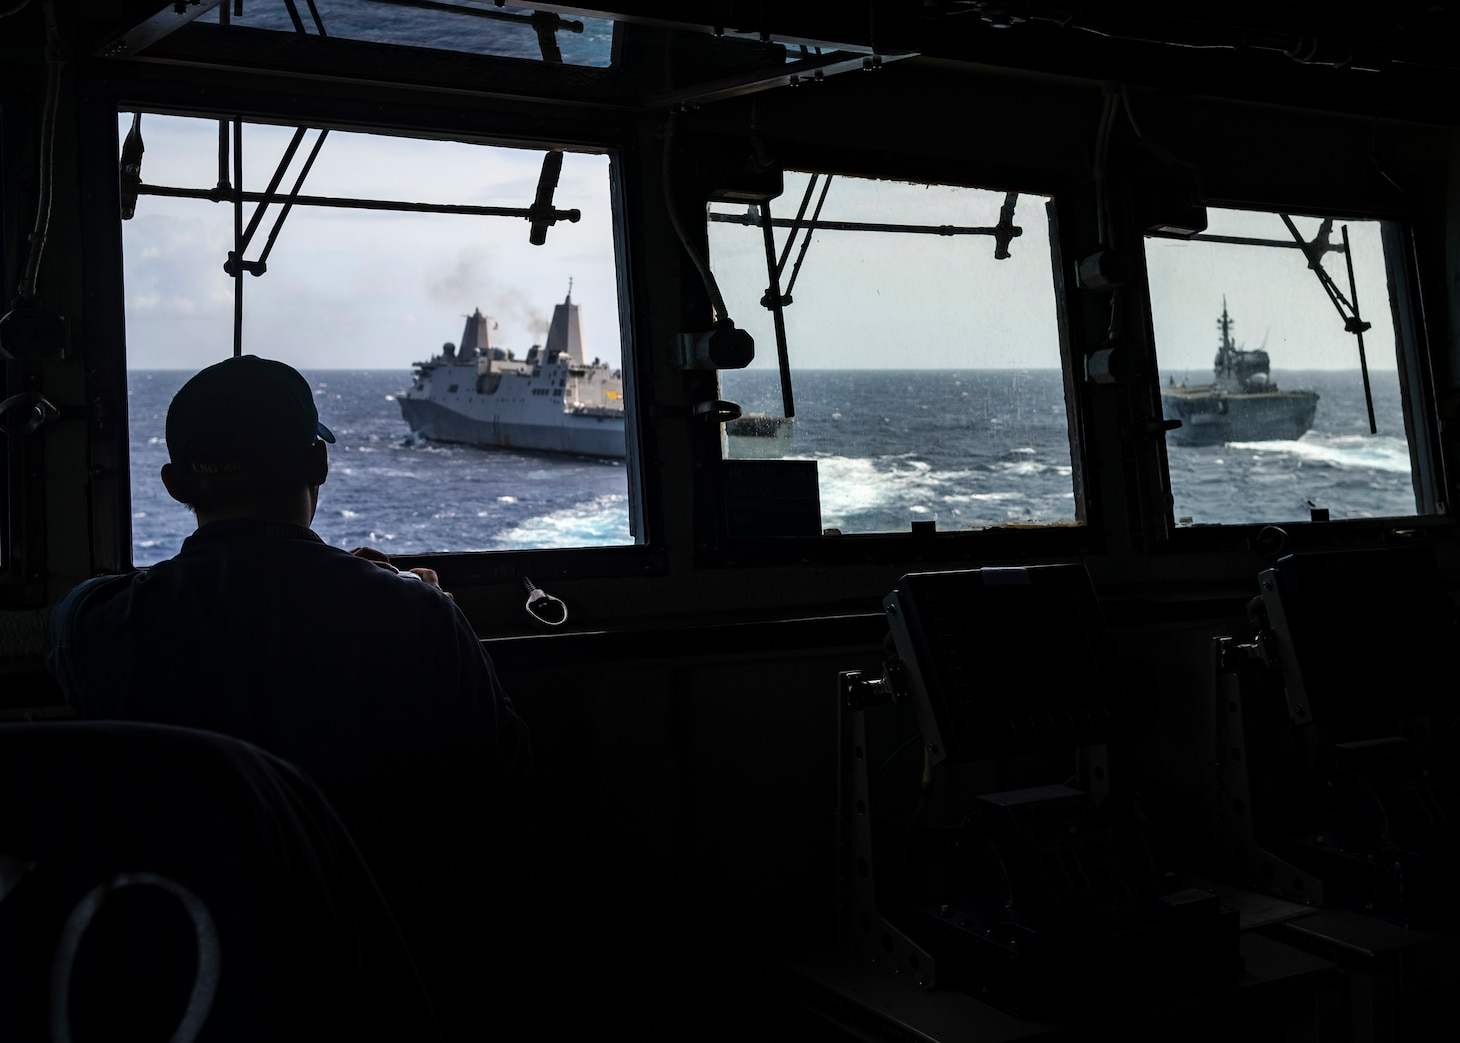 CORAL SEA (August 01, 2019) – The amphibious dock landing ship USS Ashland (LSD 48) sails with the amphibious transport dock ship USS Green Bay (LPD 20), left, and the Japan Maritime Self-Defense Force destroyer helicopter ship JS Ise (DDH 182). Ashland, part of the Wasp Amphibious Ready Group, with embarked 31st Marine Expeditionary Unit, is operating in the Indo-Pacific region to enhance interoperability with partners and serve as a ready-response force for any type of contingency.